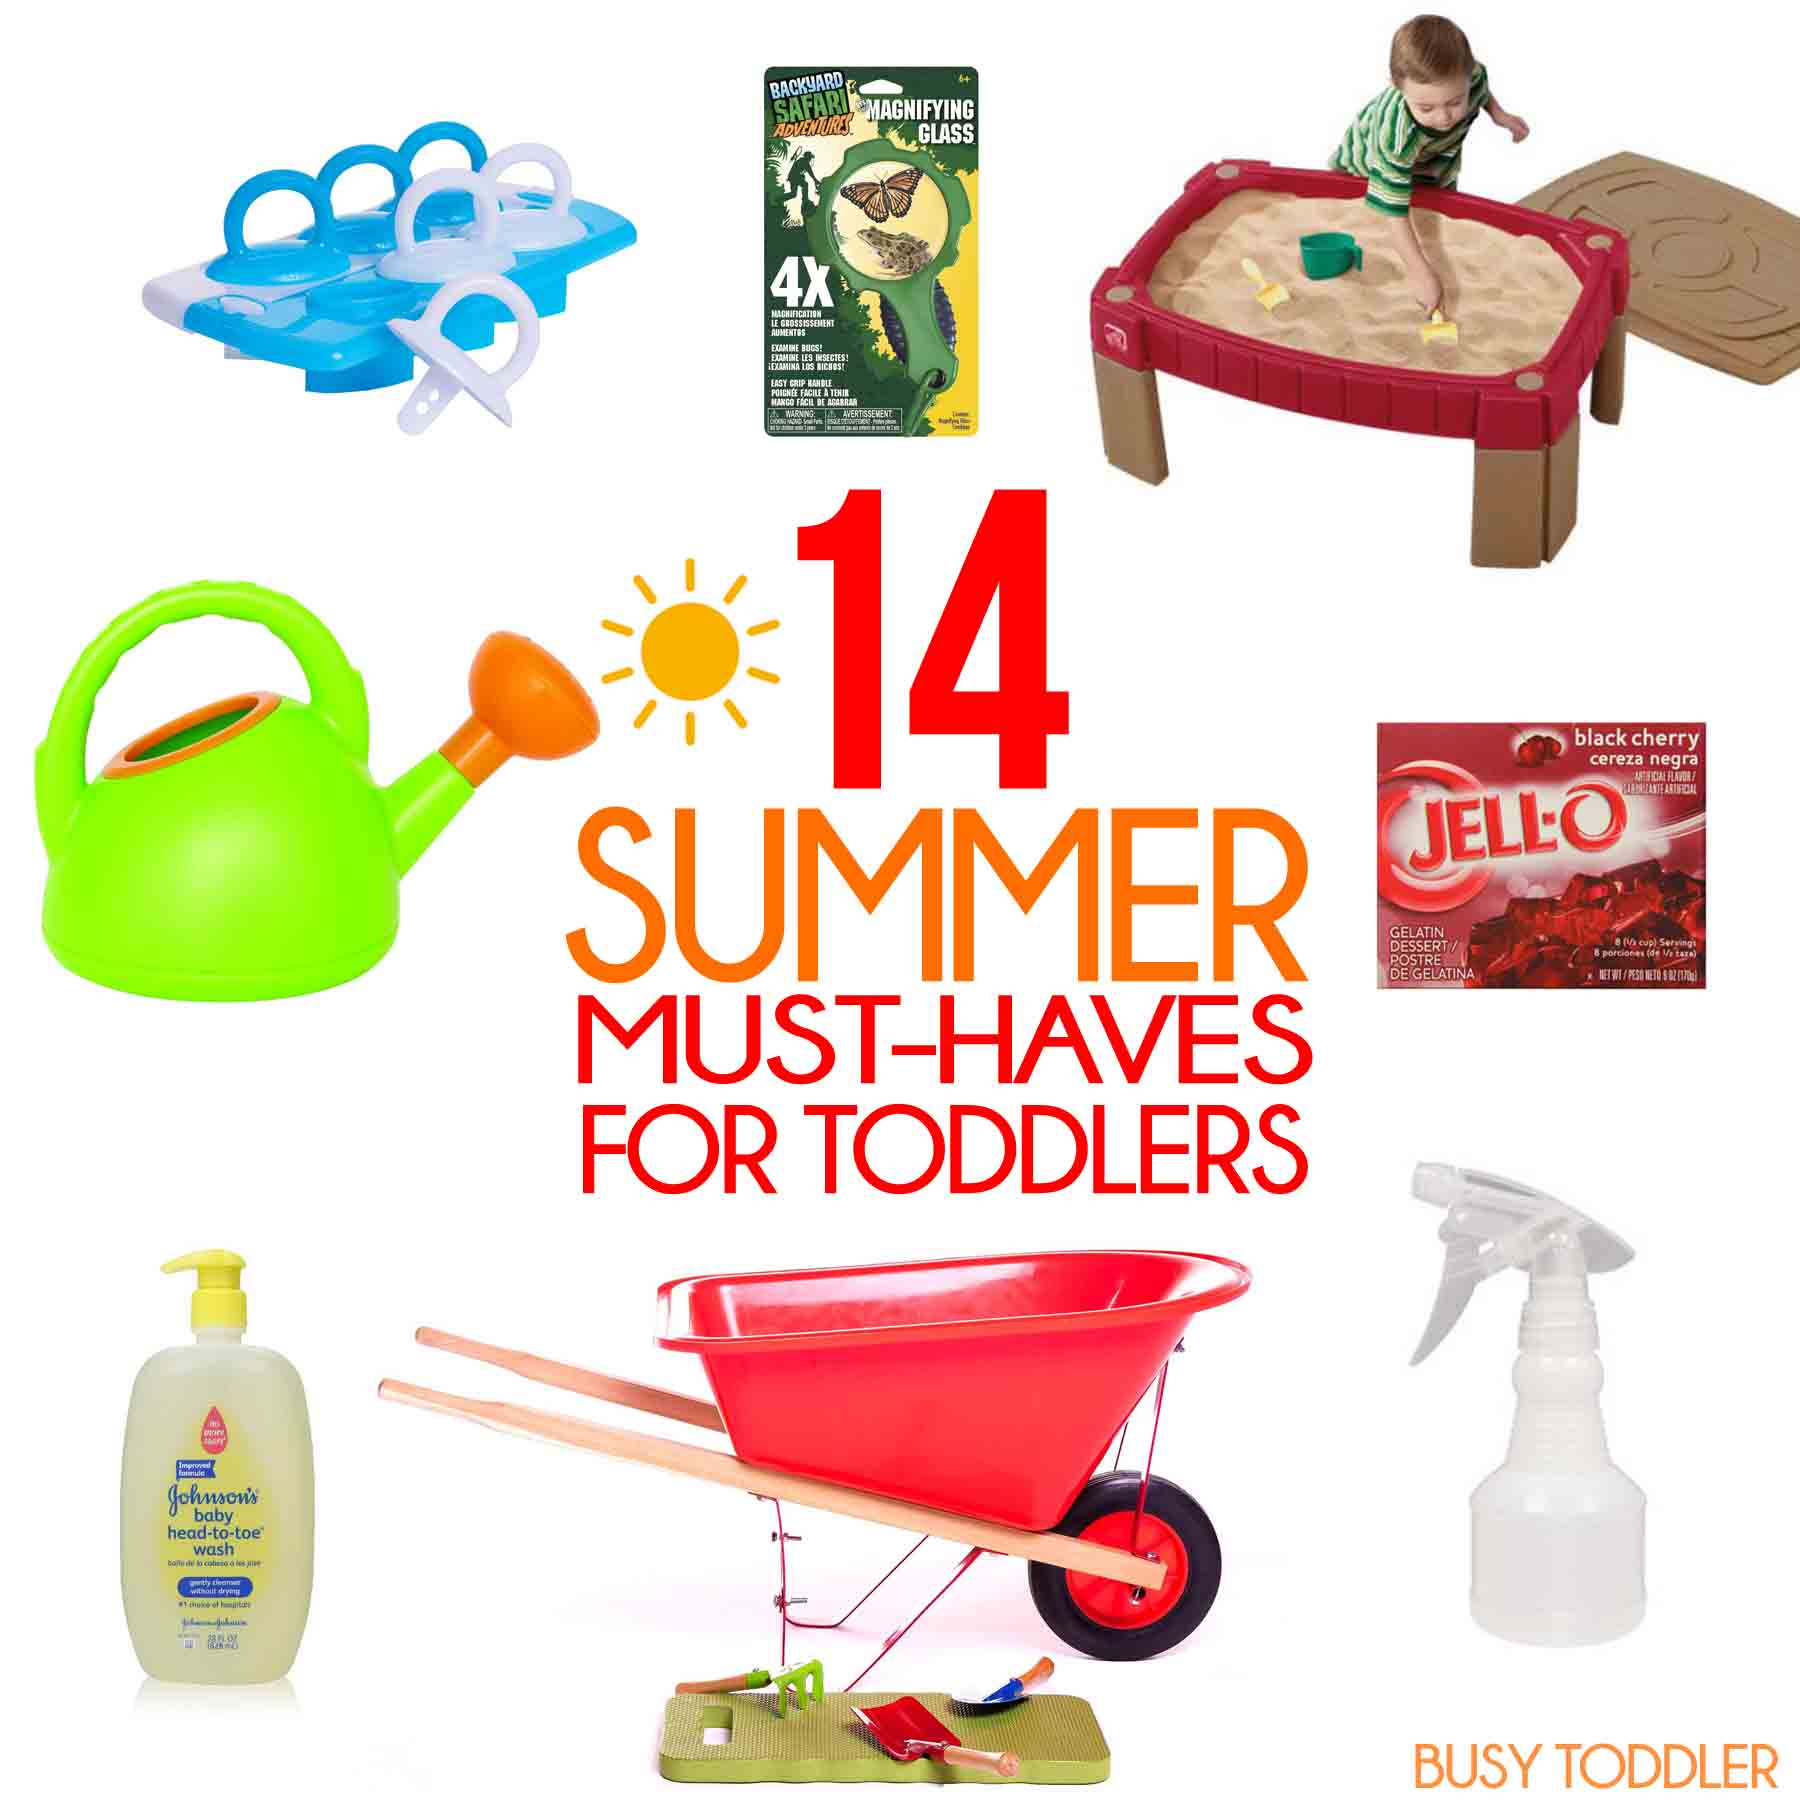 SUMMER MUST-HAVES FOR TODDLERS: A great list of 14 fun items to keep your toddler busy this summer